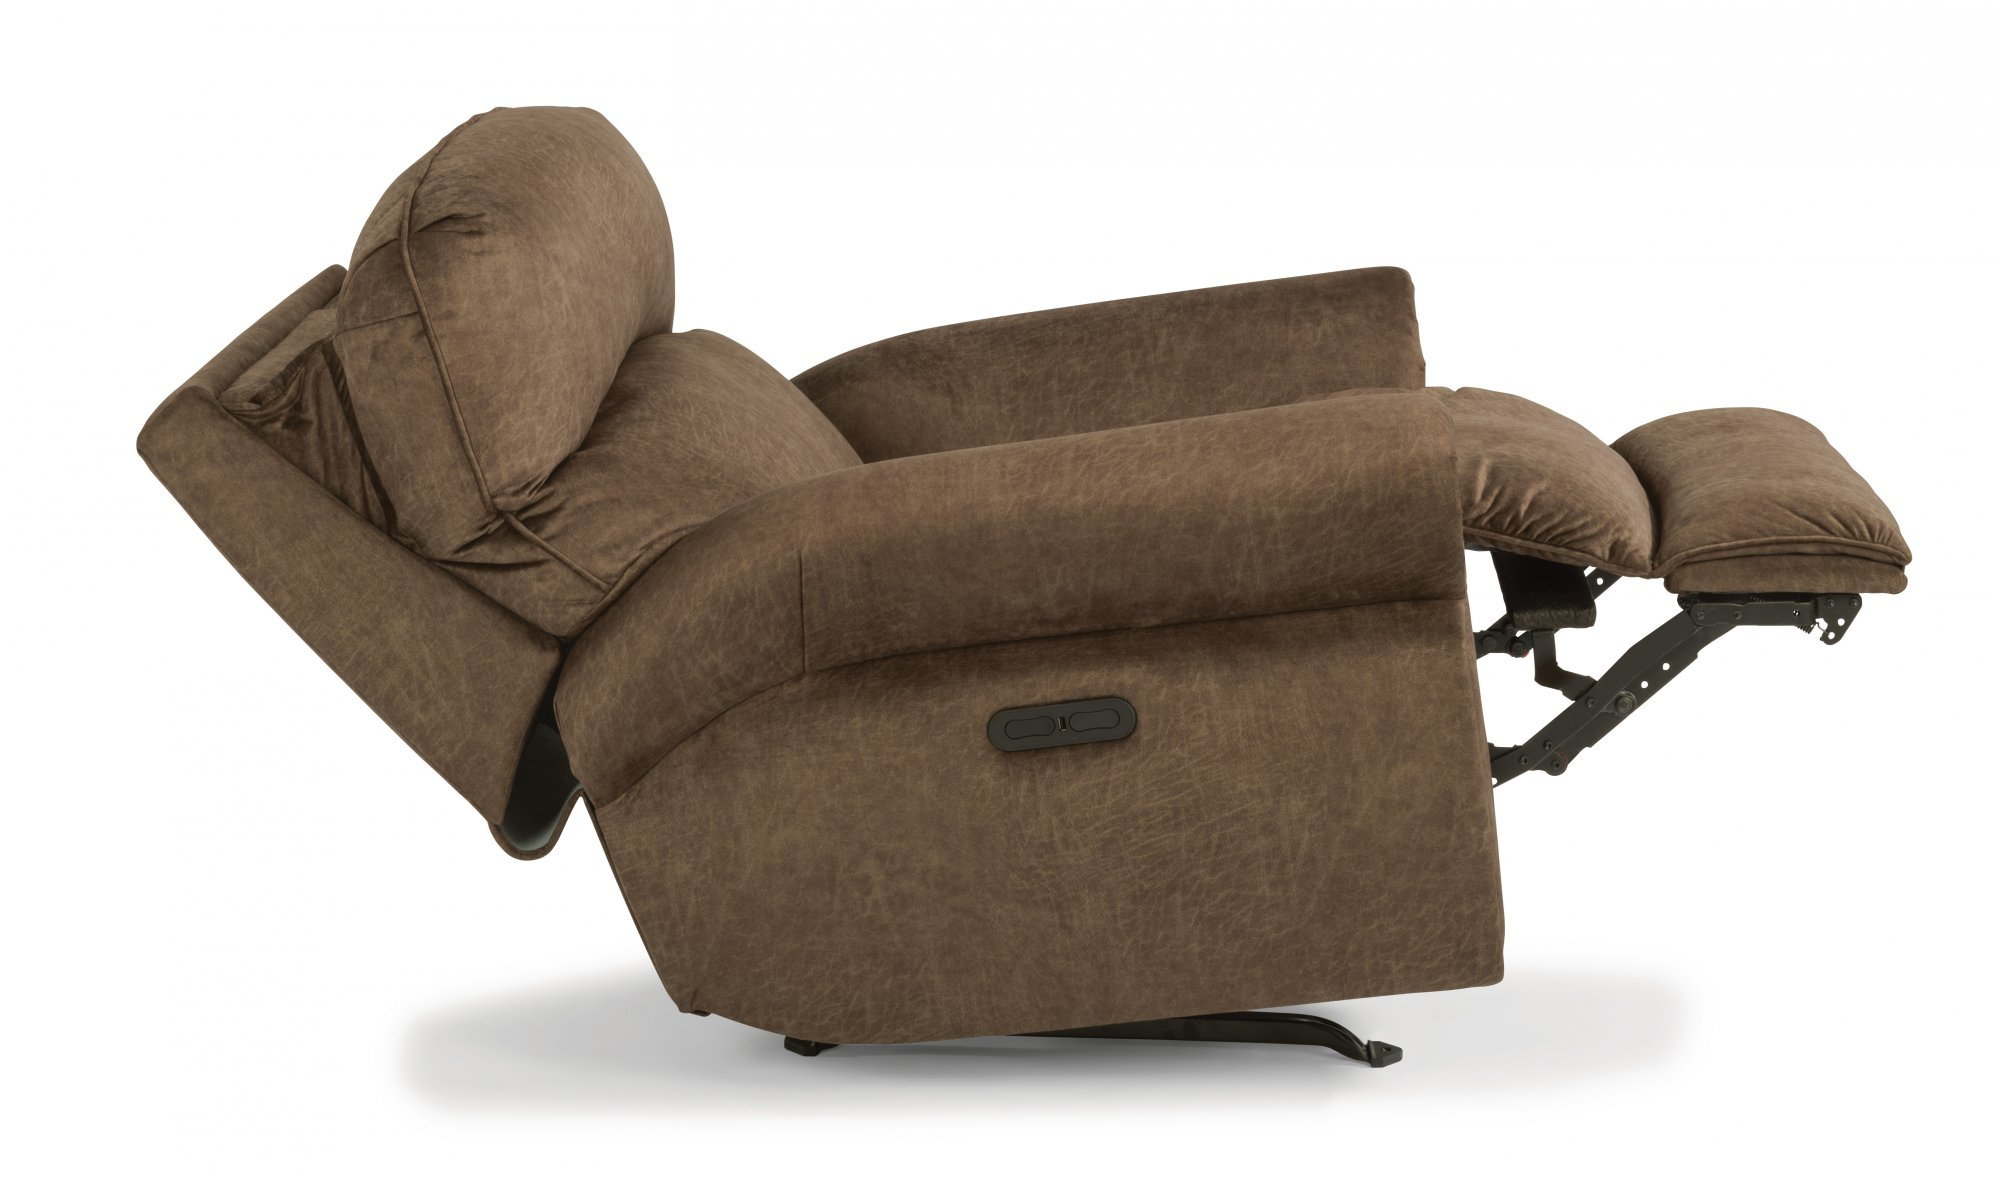 Awe Inspiring Flexsteel 4504 50H Langston Fabric Power Recliner With Unemploymentrelief Wooden Chair Designs For Living Room Unemploymentrelieforg